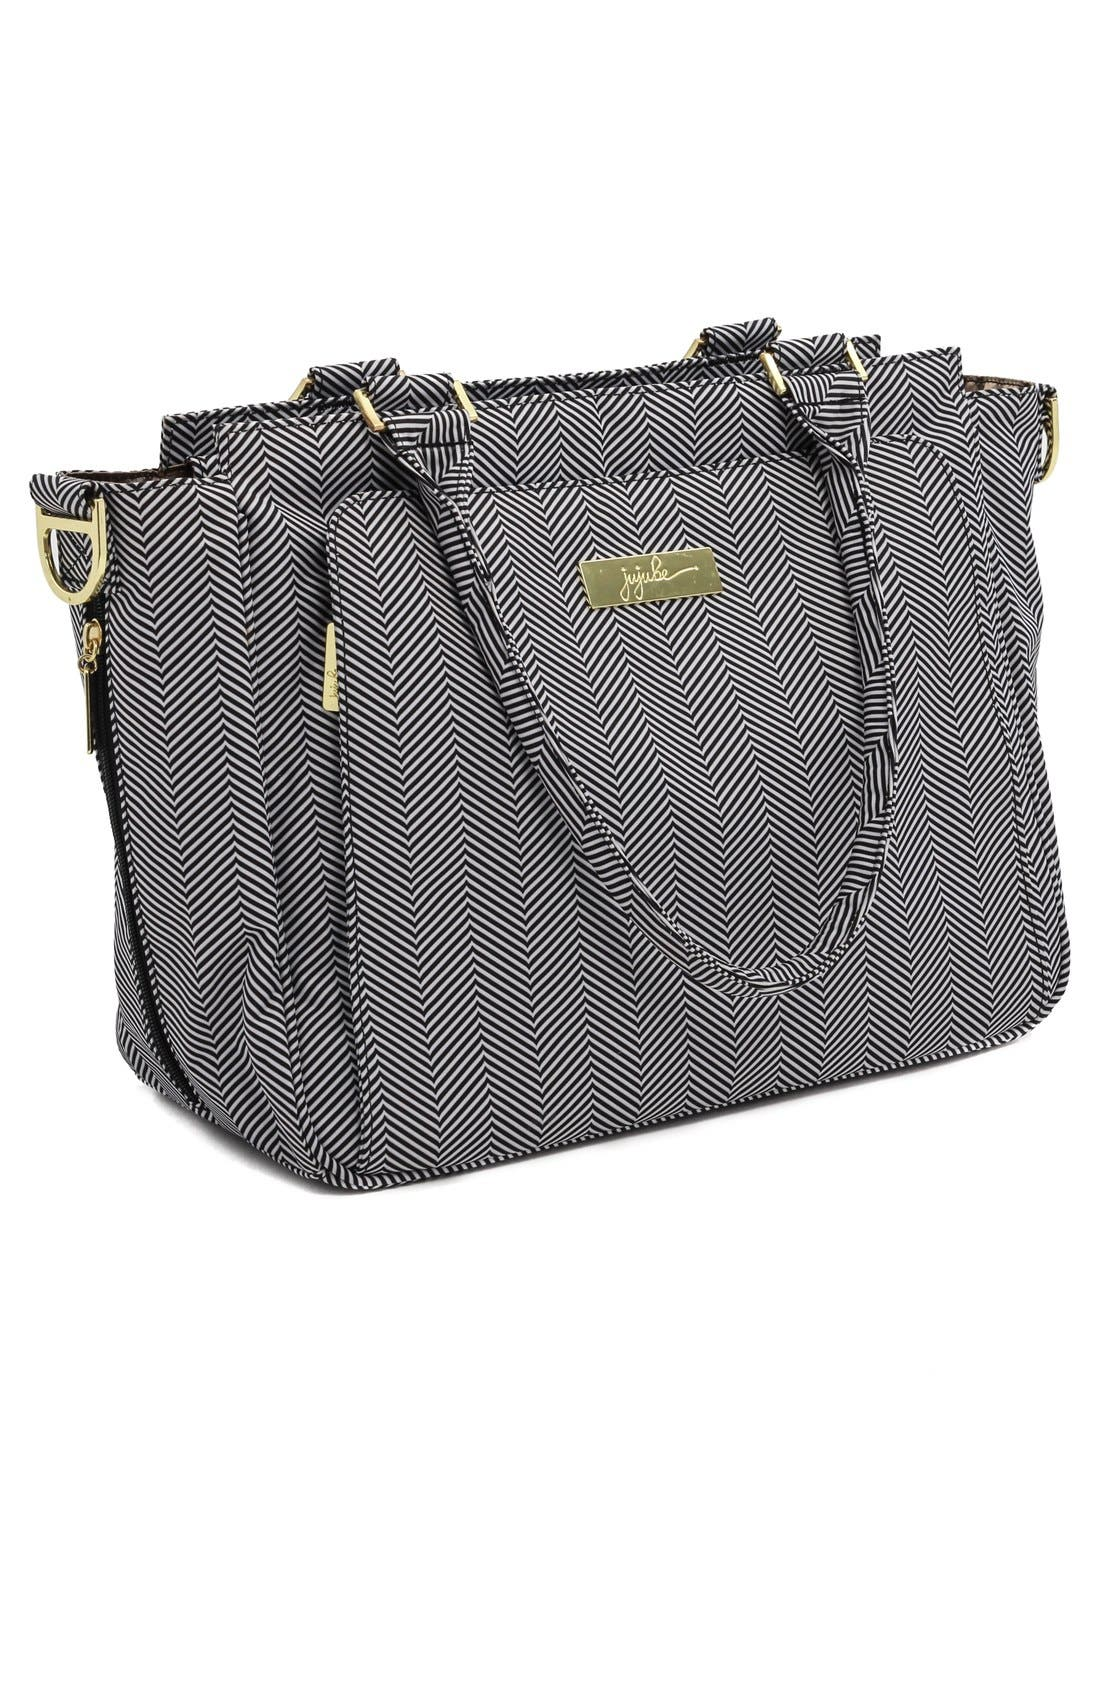 'Be Classy' Messenger Diaper Bag,                             Alternate thumbnail 4, color,                             The Queen Of The Nile